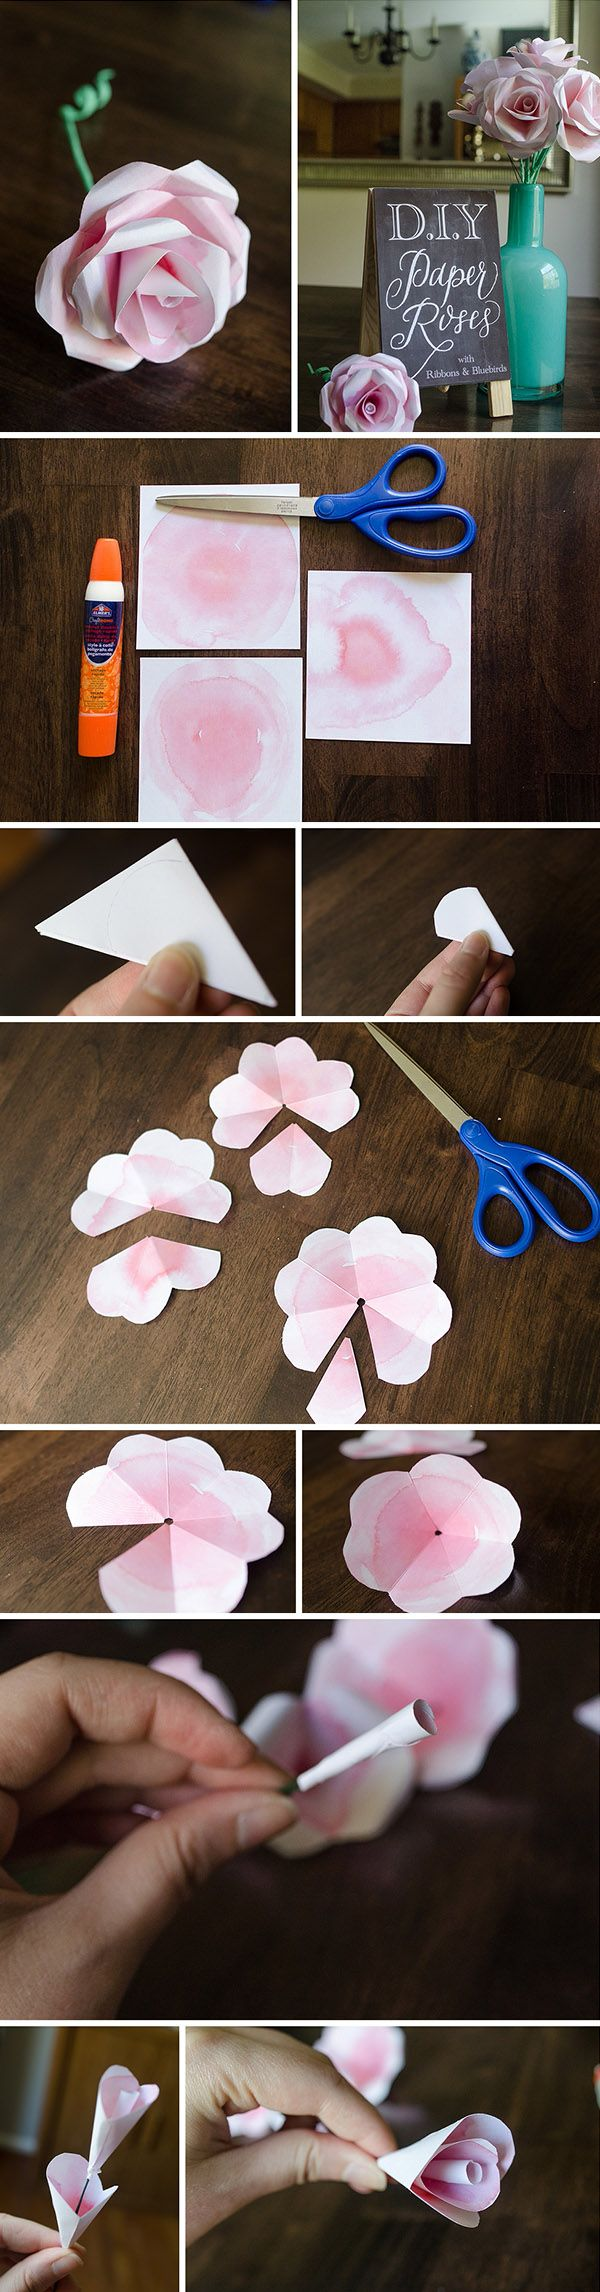 diy watercolor paper roses for wedding flower decorations